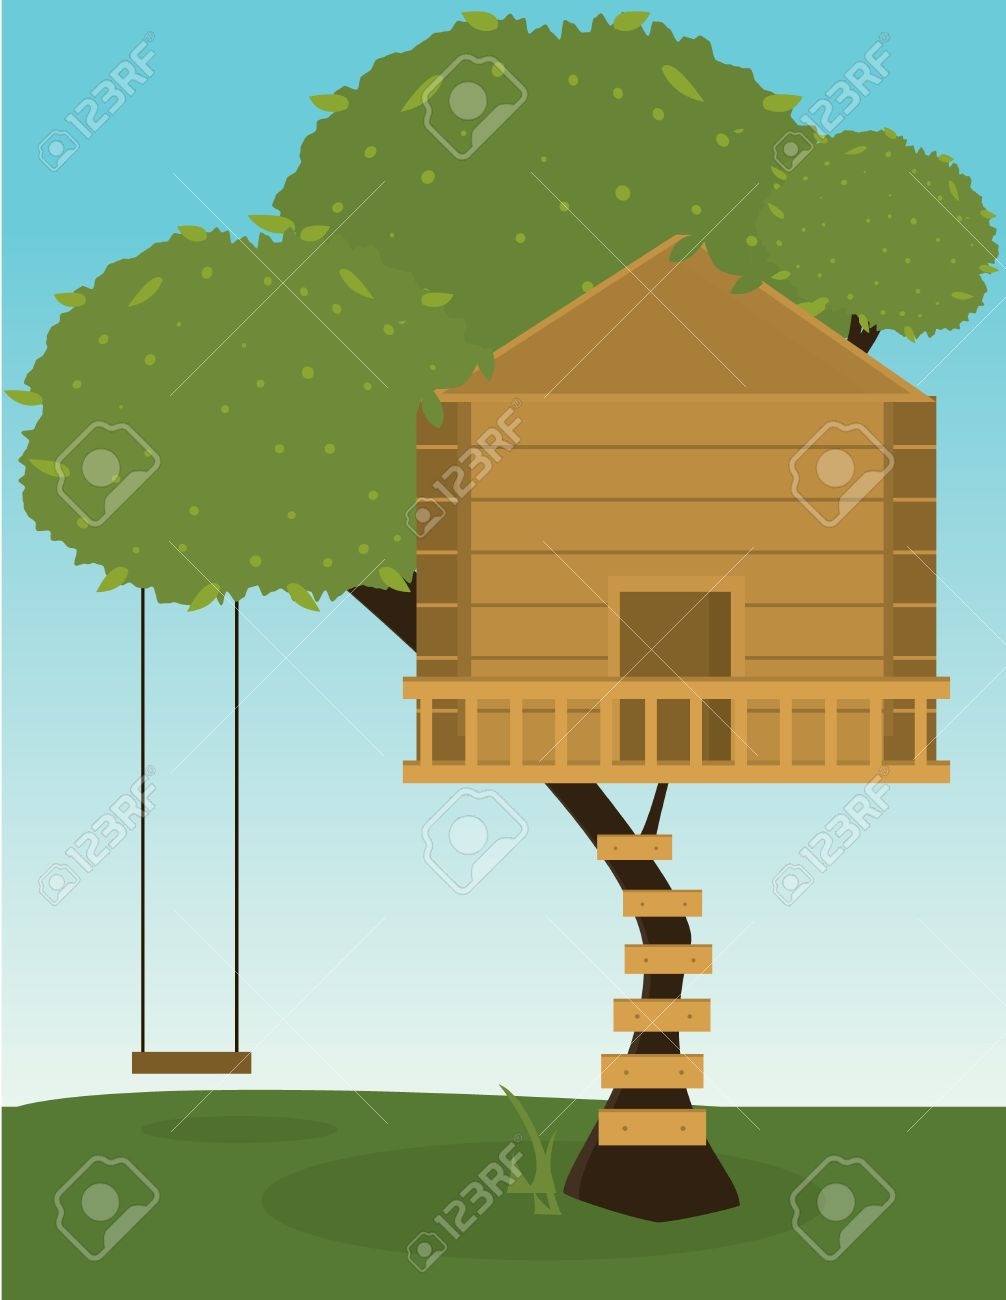 Tree with wooden treehouse and tree swing Stock Vector - 6468264